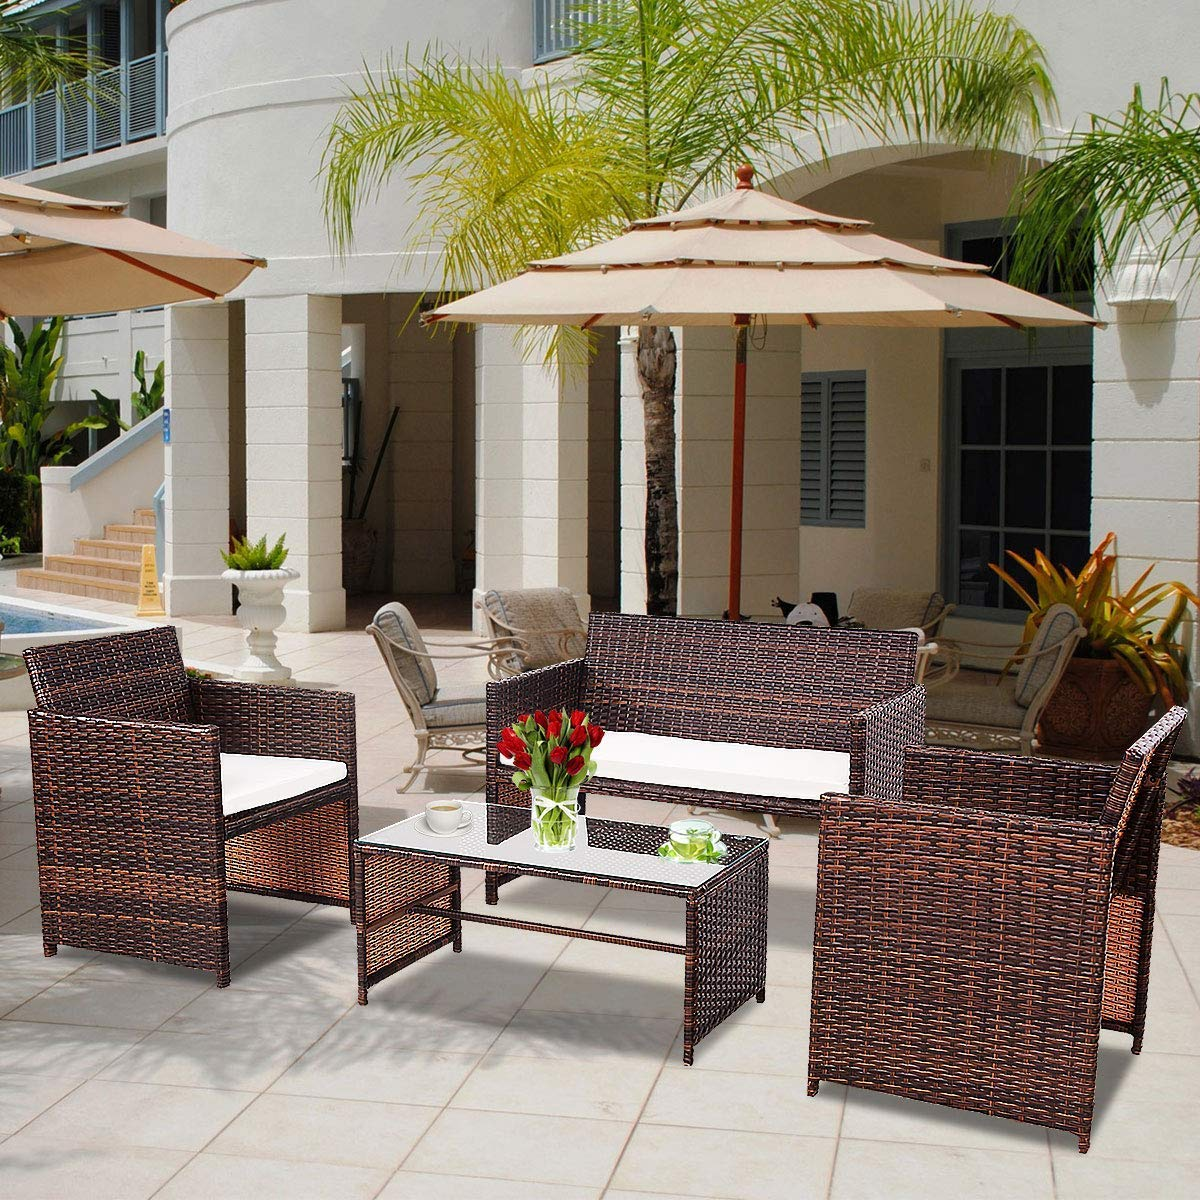 Tangkula AM1485HM Rattan Sofas Garden Lawn Poolside Cushioned Seat 4 pcs Wicker Set Outdoor Patio Furniture